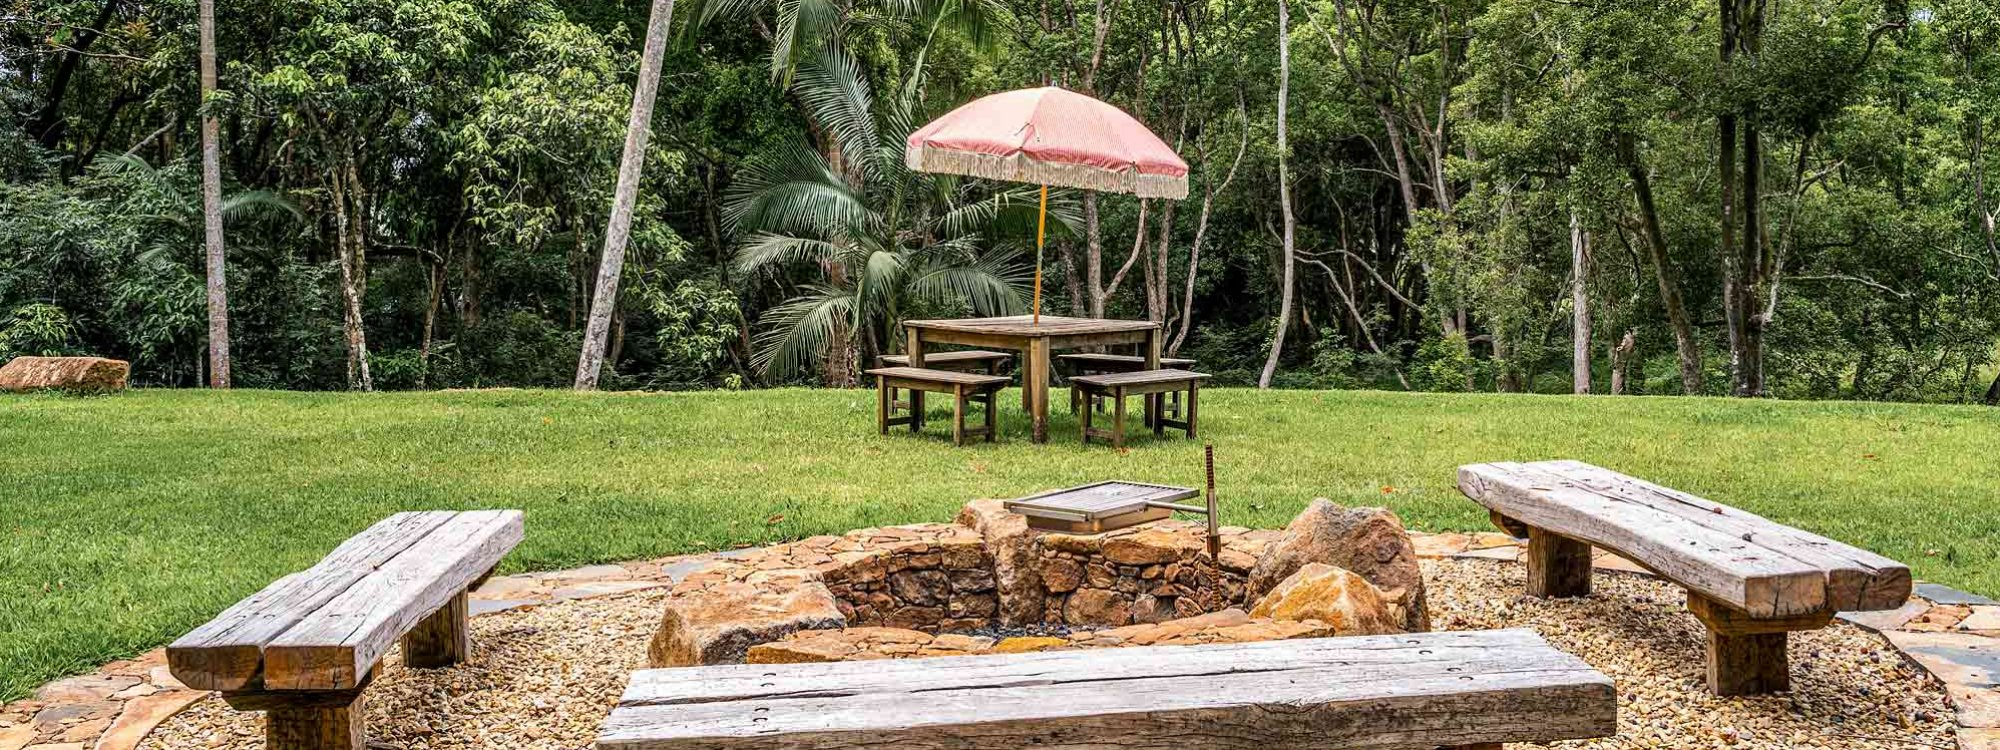 Charlottes Web - Byron Bay - Firepit and Creek b